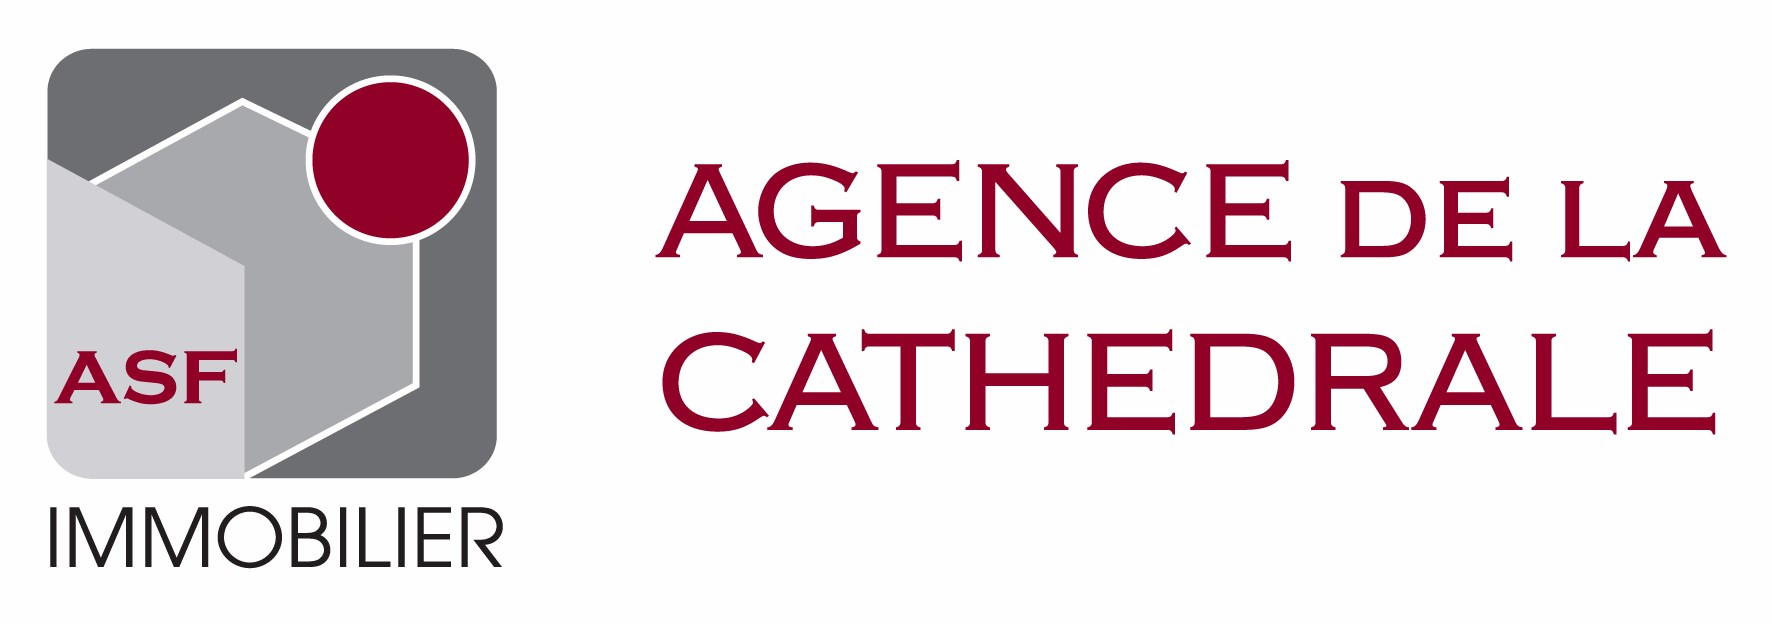 Agence de la cathedrale agence immobili re albi for Agence immobiliere 62